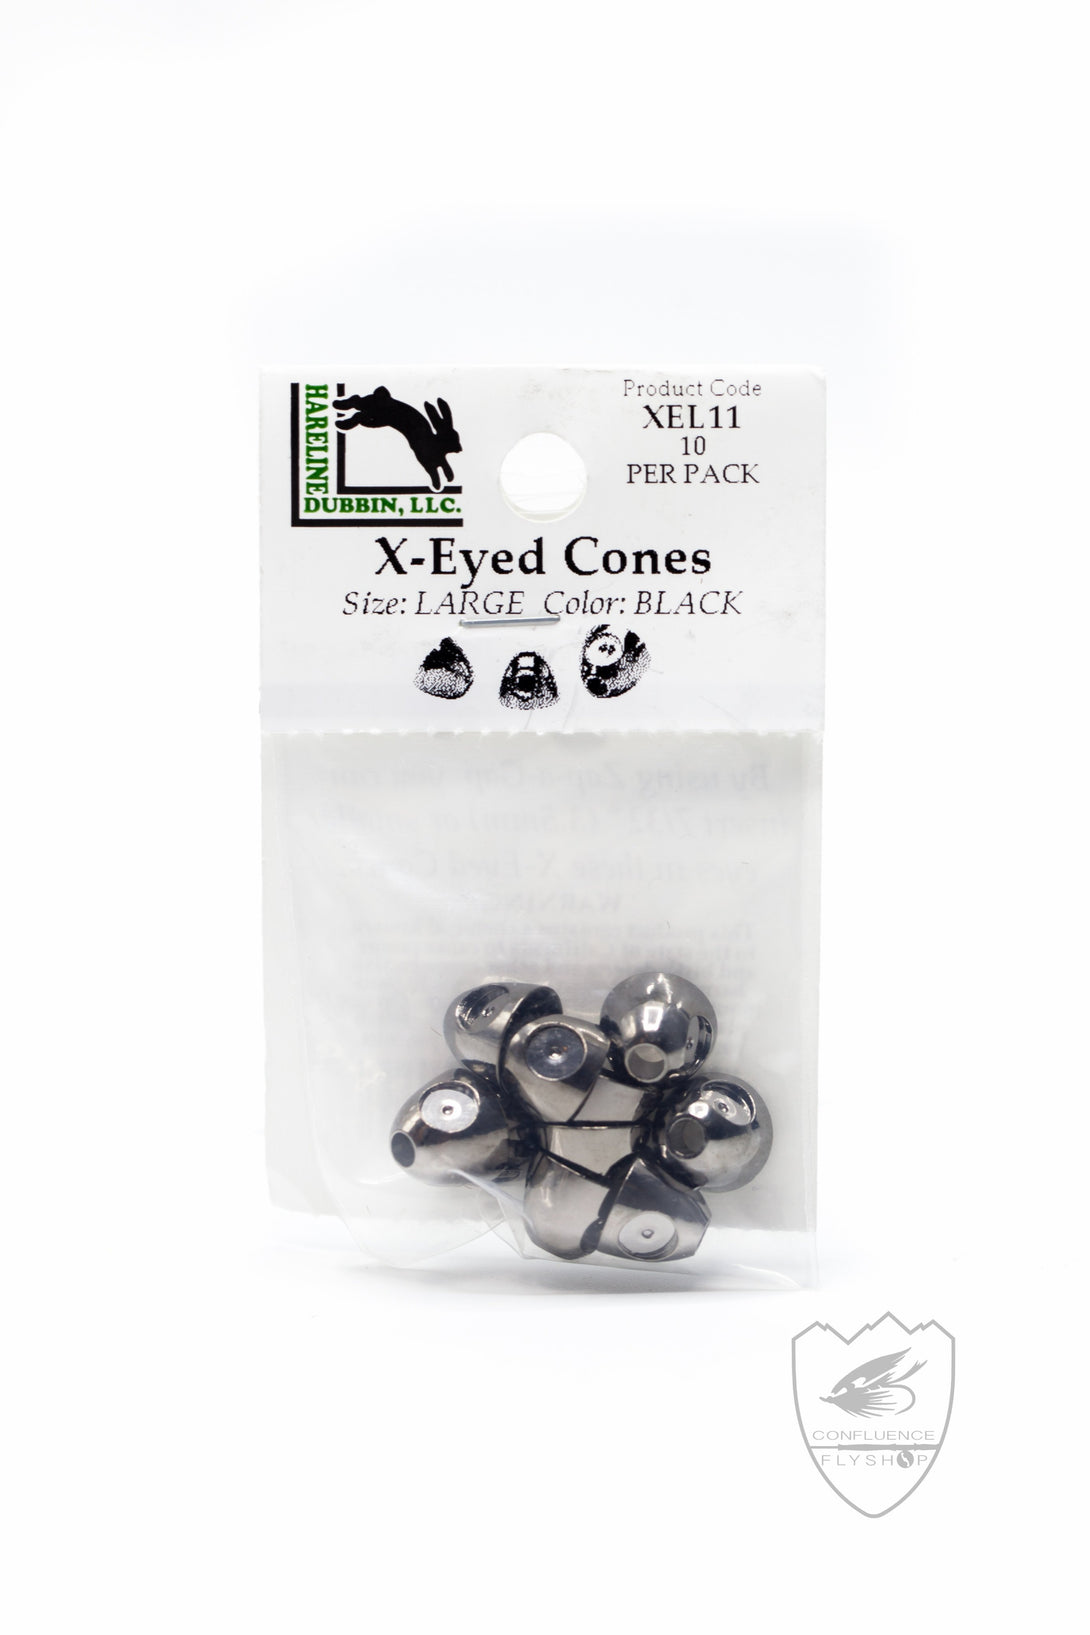 X-Eyed Cones,Beads,Hareline Dubbin Inc-Confluence Fly Shop